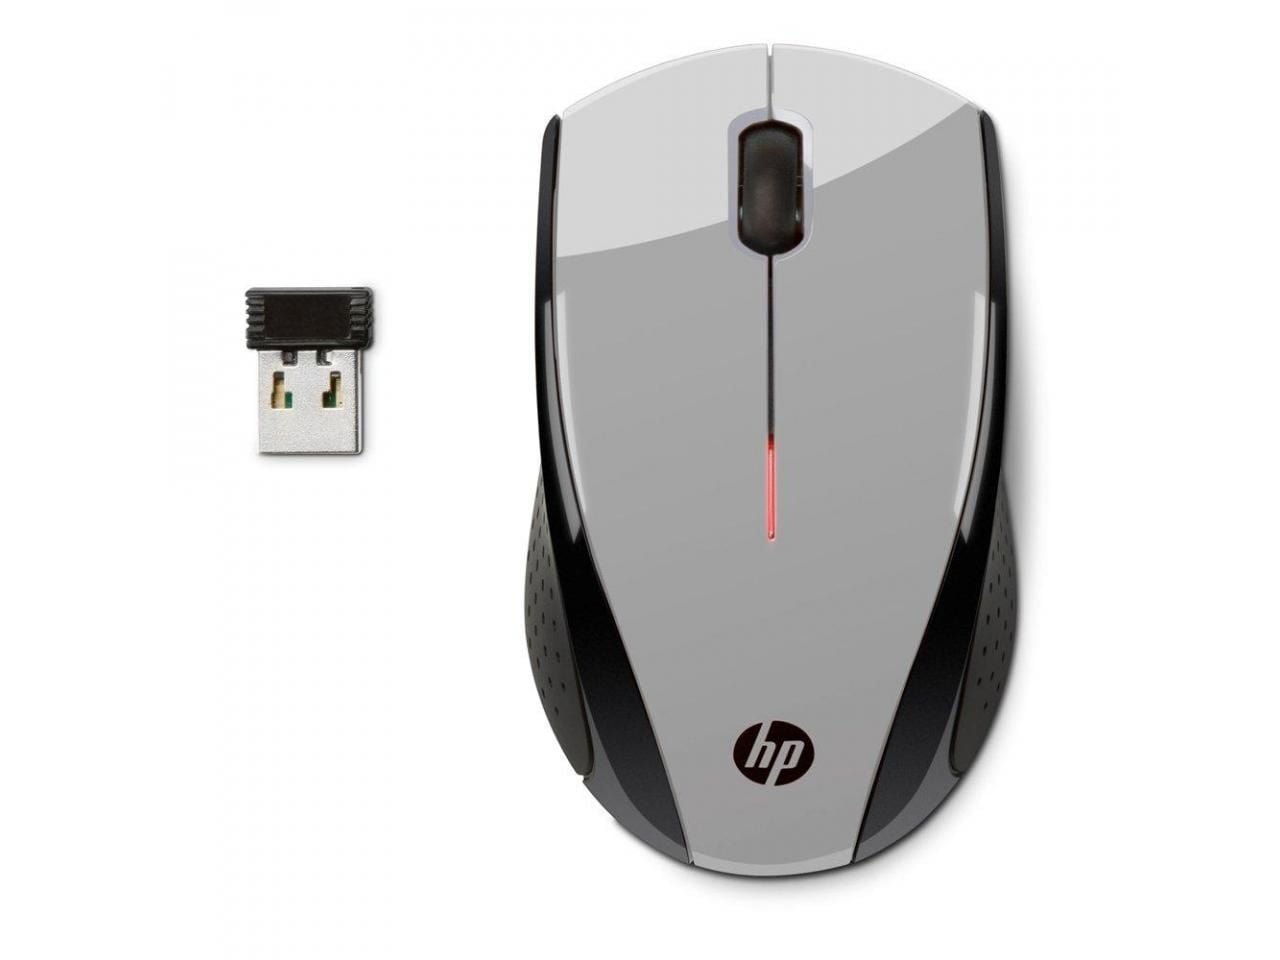 Mouse Wireless 1200dpi Cinza X3000 Hp